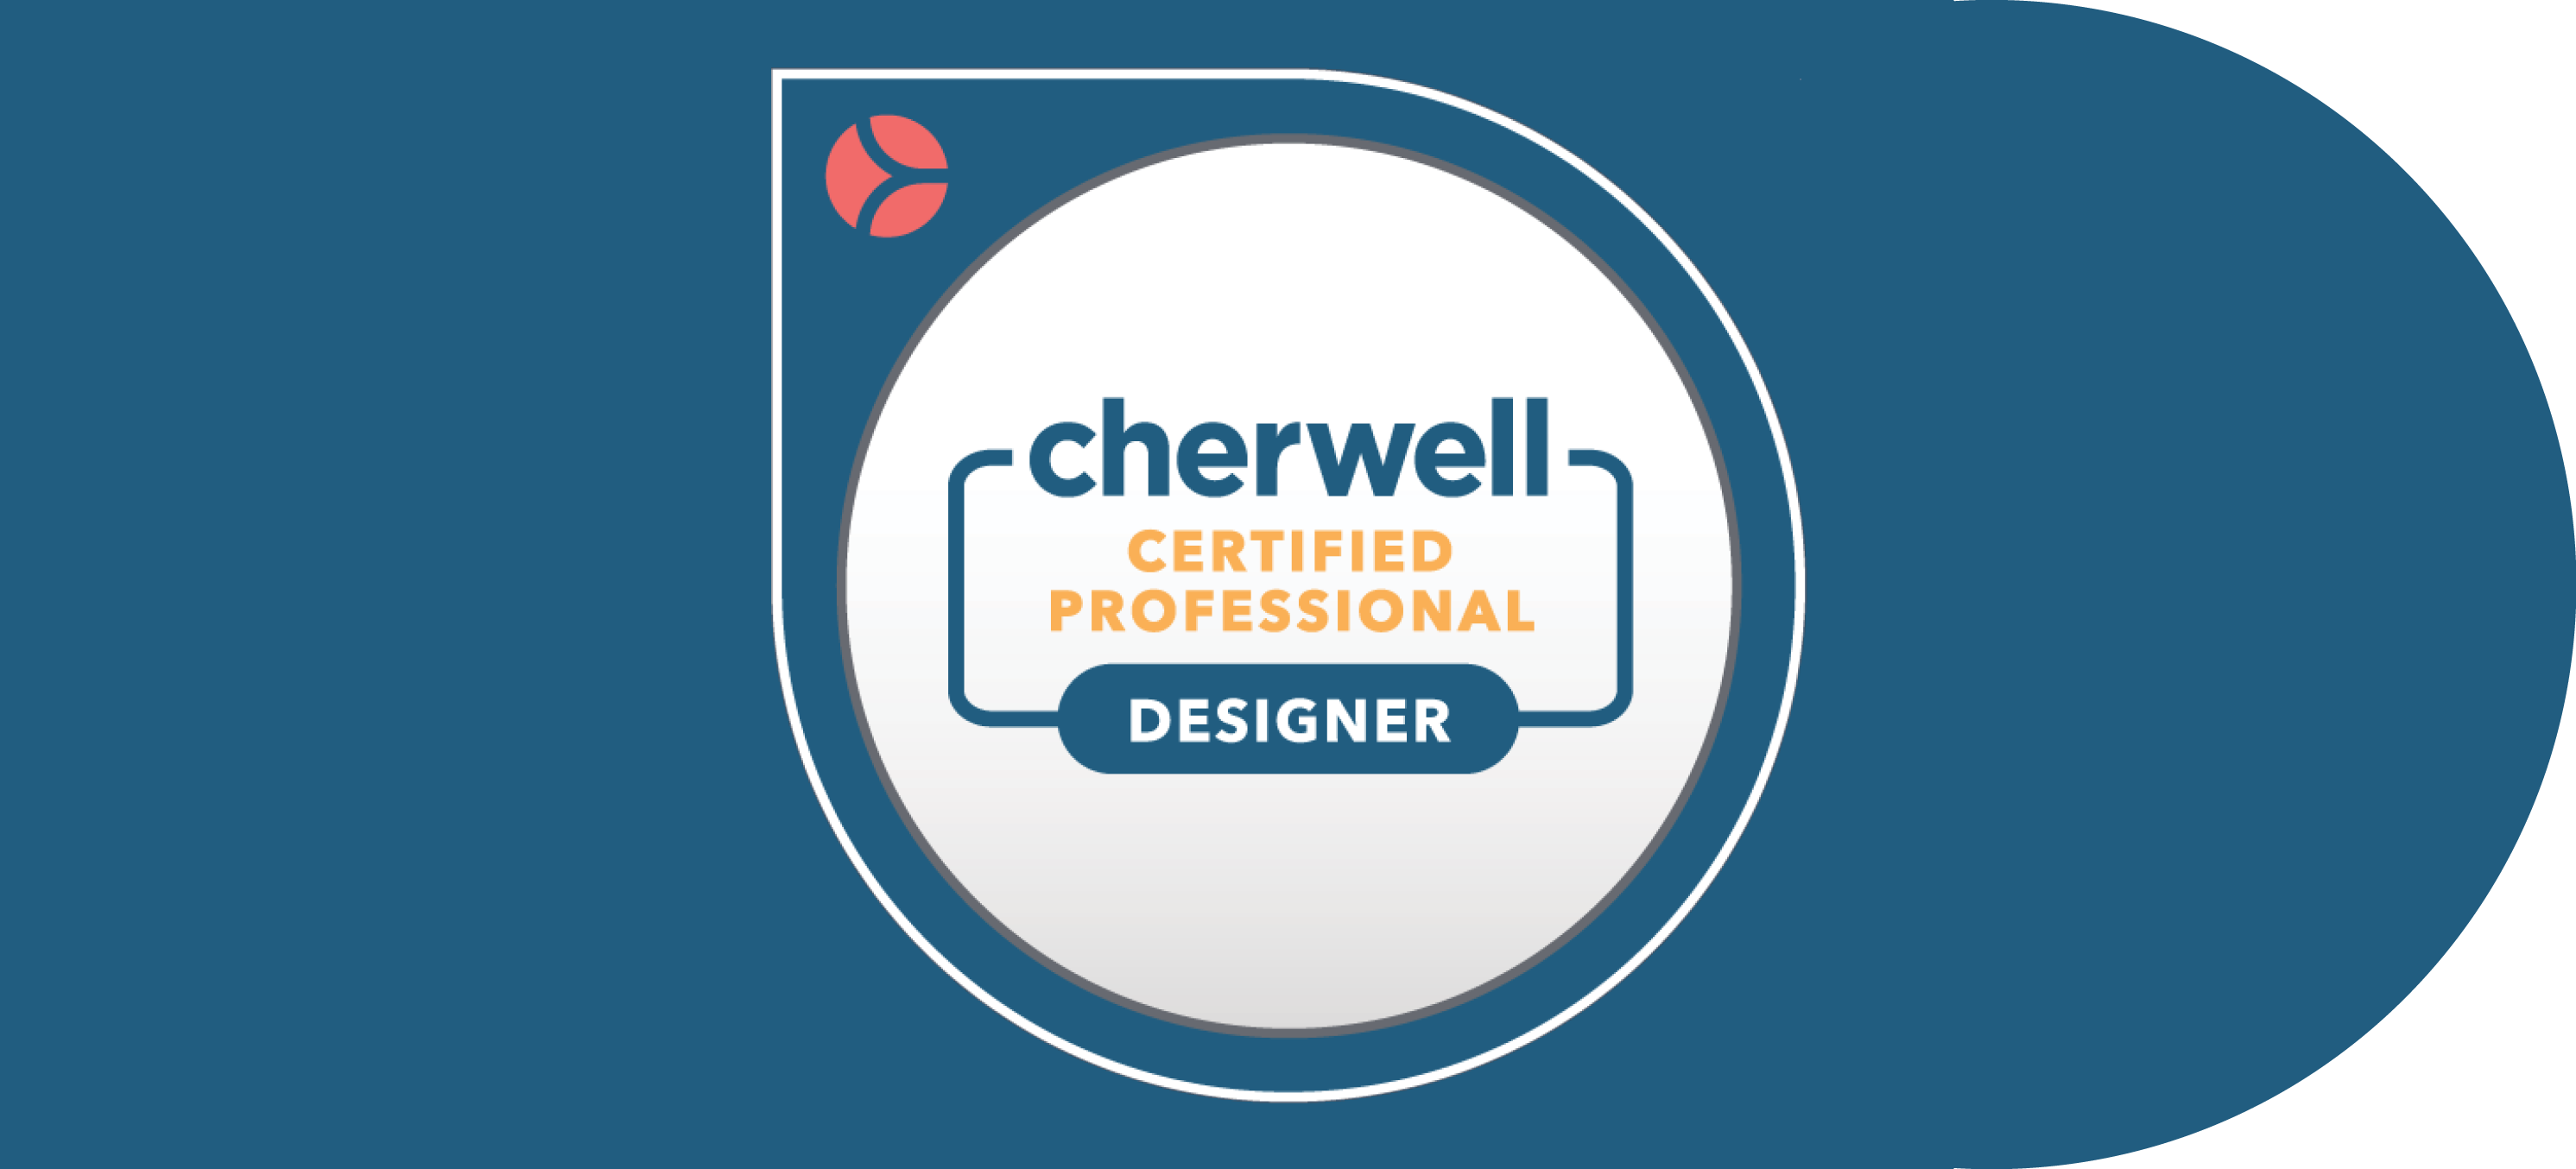 The TEK Earns Cherwell Certified Professional Designer Certification